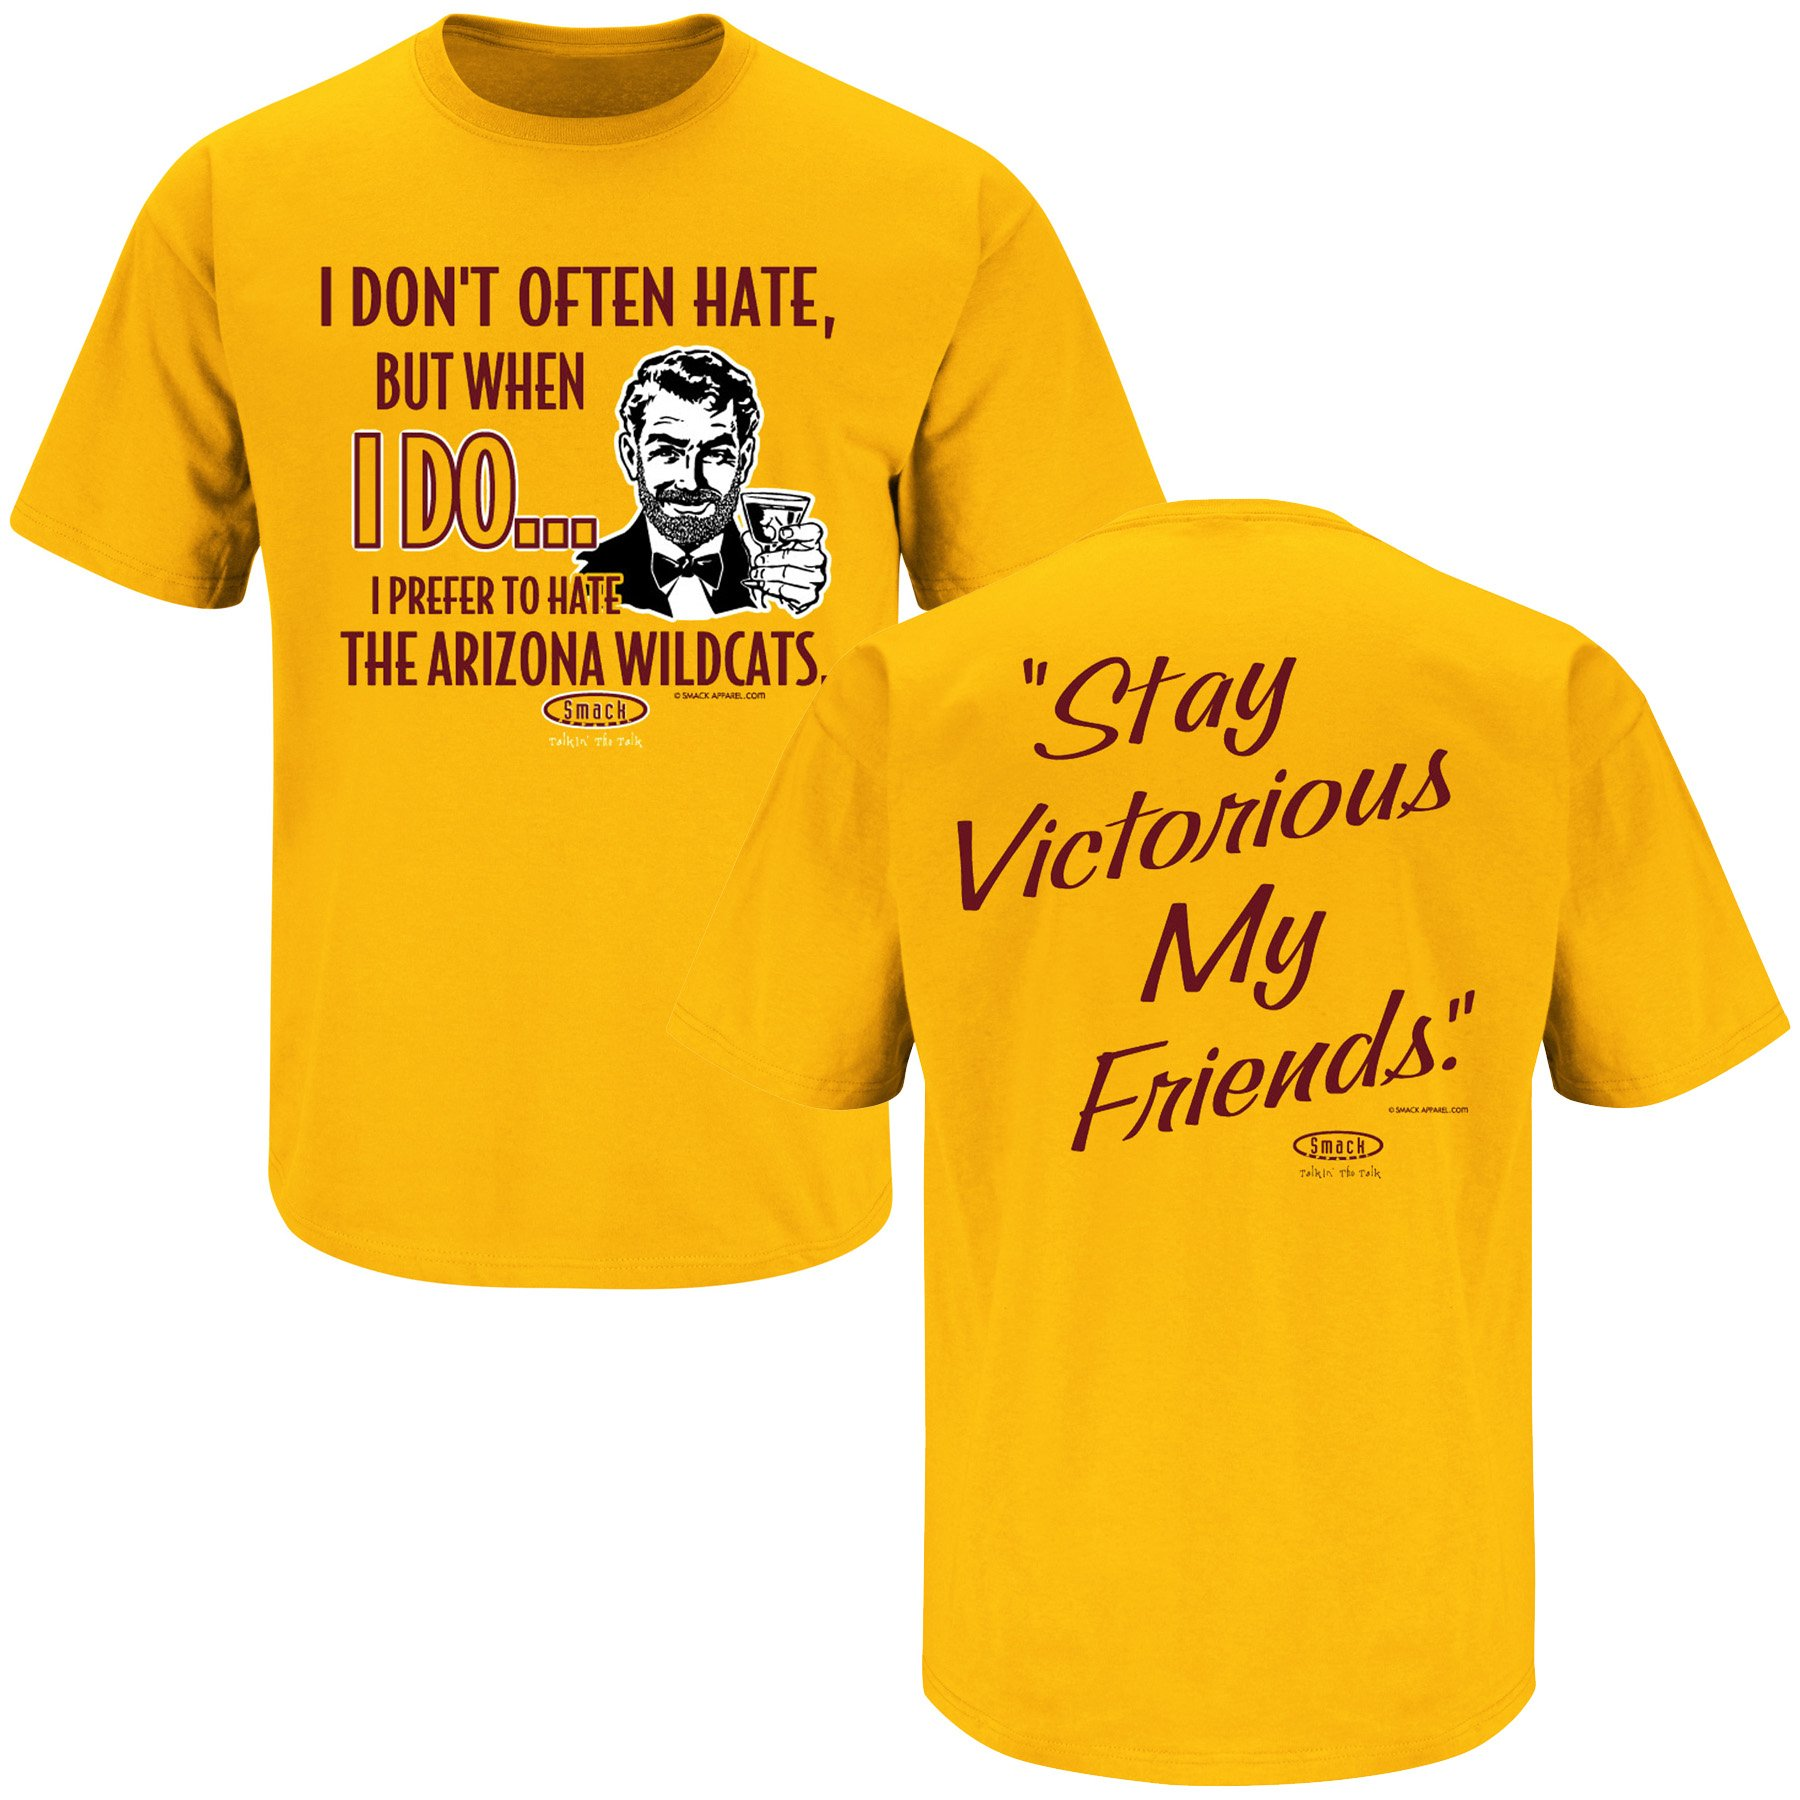 Smack Apparel Arizona State Football Fans. Stay Victorious (Anti-Wildcats) Gold T-Shirt (Sm-5X)